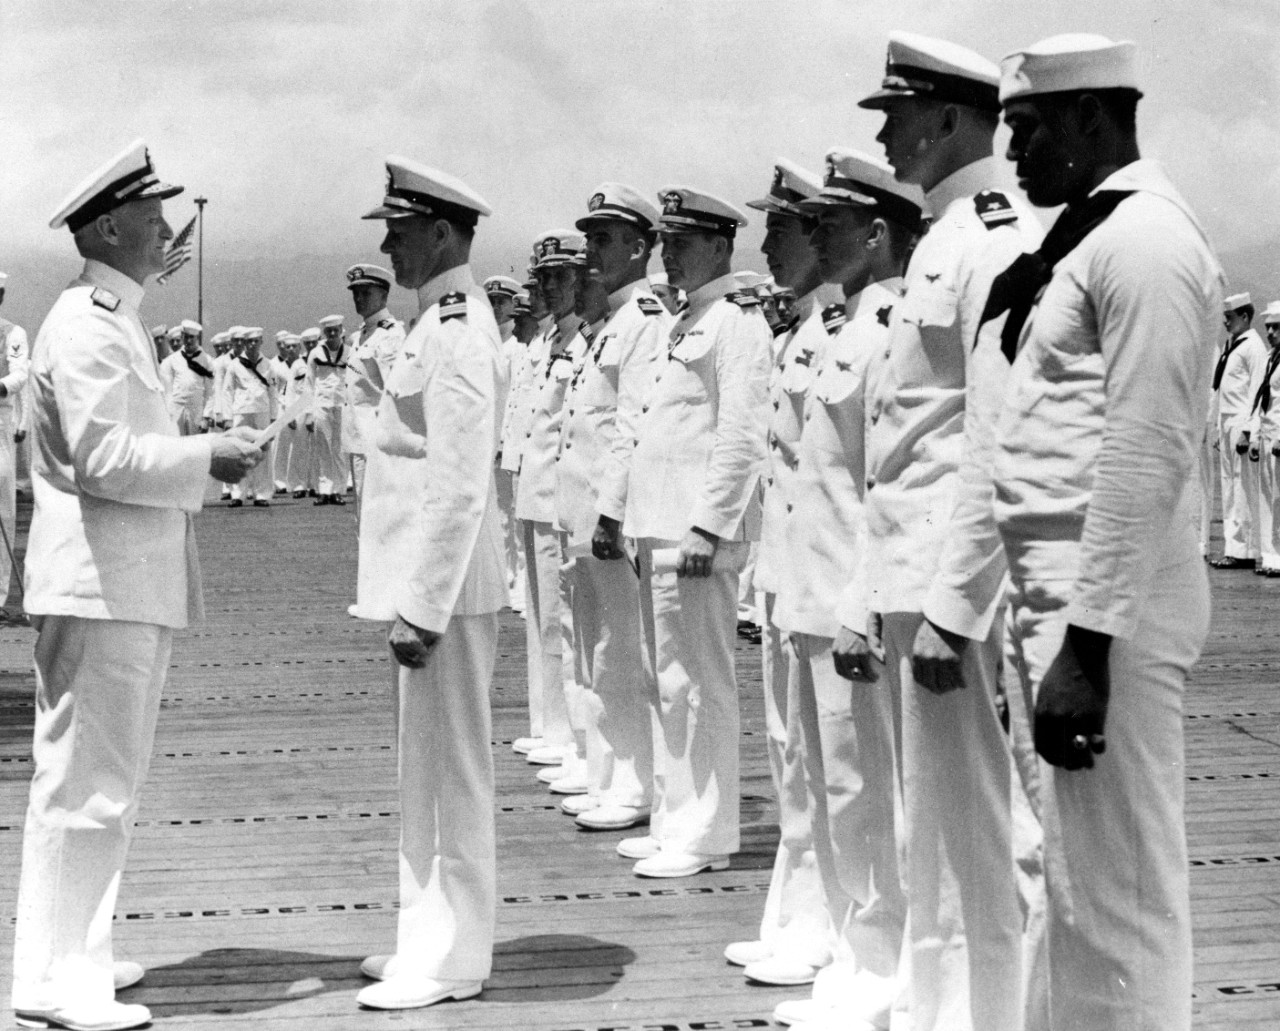 Adm. Nimitz awards Lt. Cmdr. McClusky the Distinguished Flying Cross during a ceremony on the flight deck of Enterprise at Pearl Harbor, 26 May 1942. MATT2c Doris Miller, who receives the Navy Cross for his valorous actions during the Japanese attack on 7 December 1941, also stands in the ranks (right foreground). (U.S. Navy Photograph 80-G-23590, National Archives and Records Administration, Still Pictures Branch, College Park, Md.)